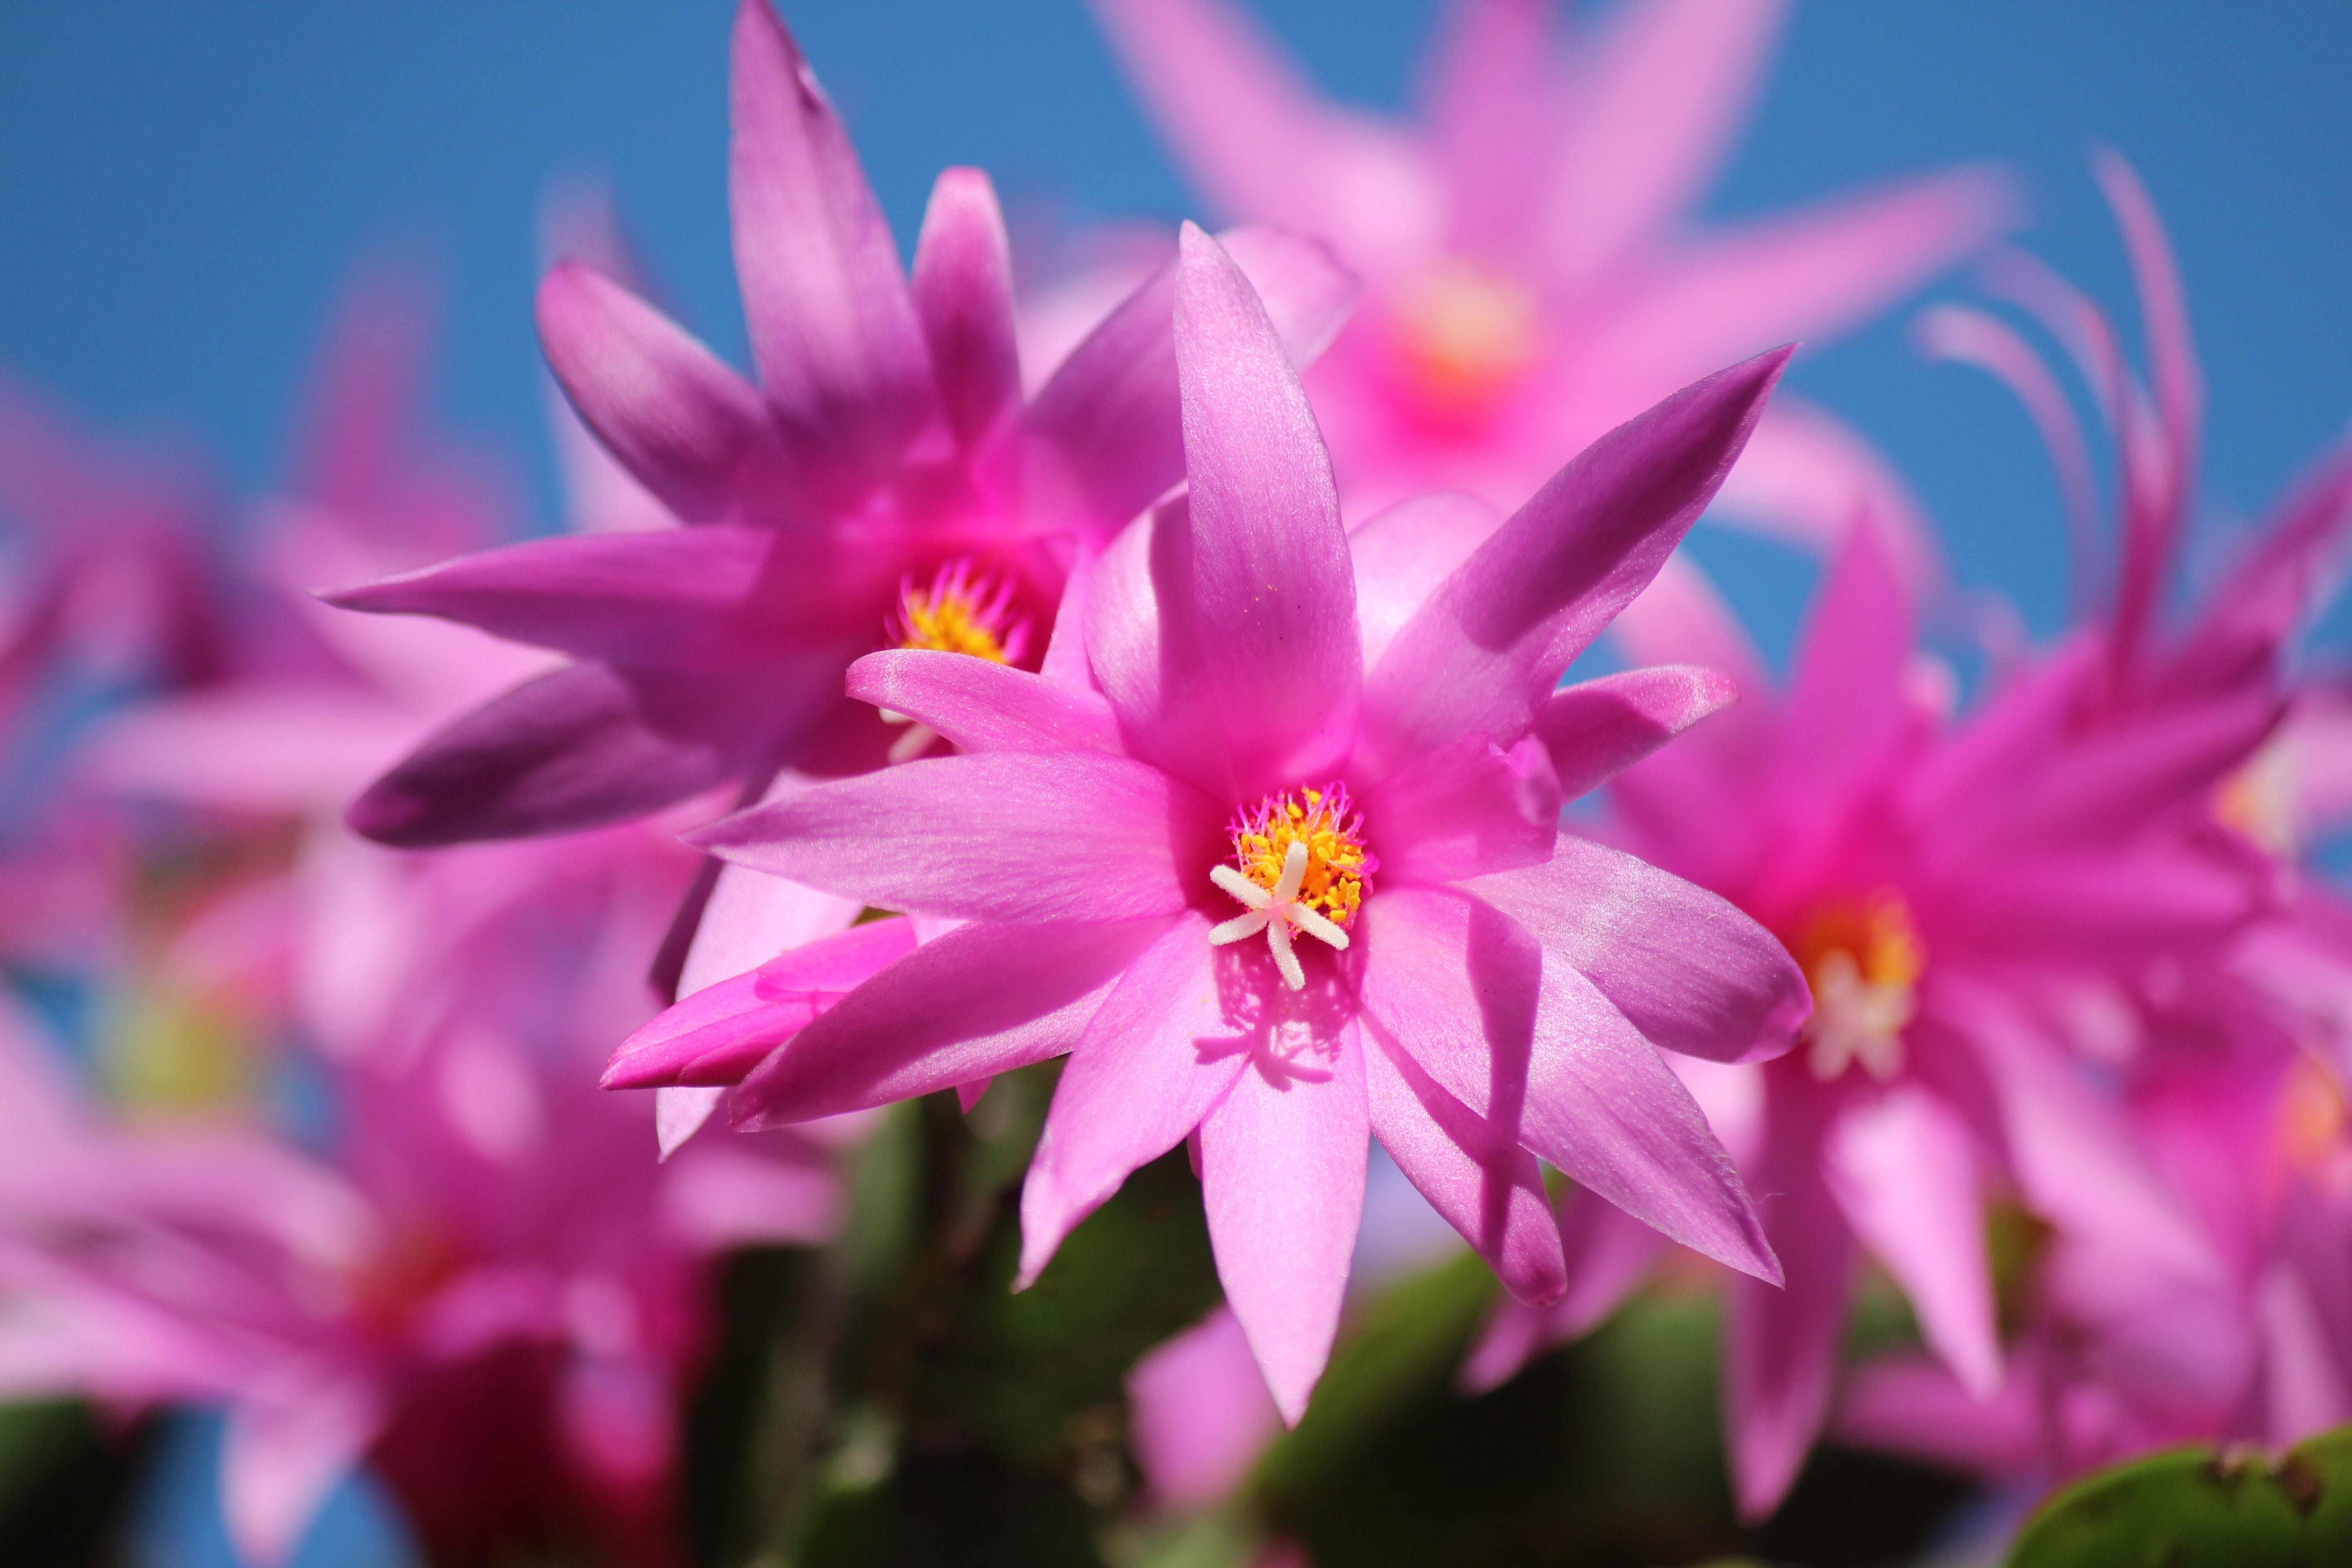 Pink Multi Petaled Flower Close Up Photography